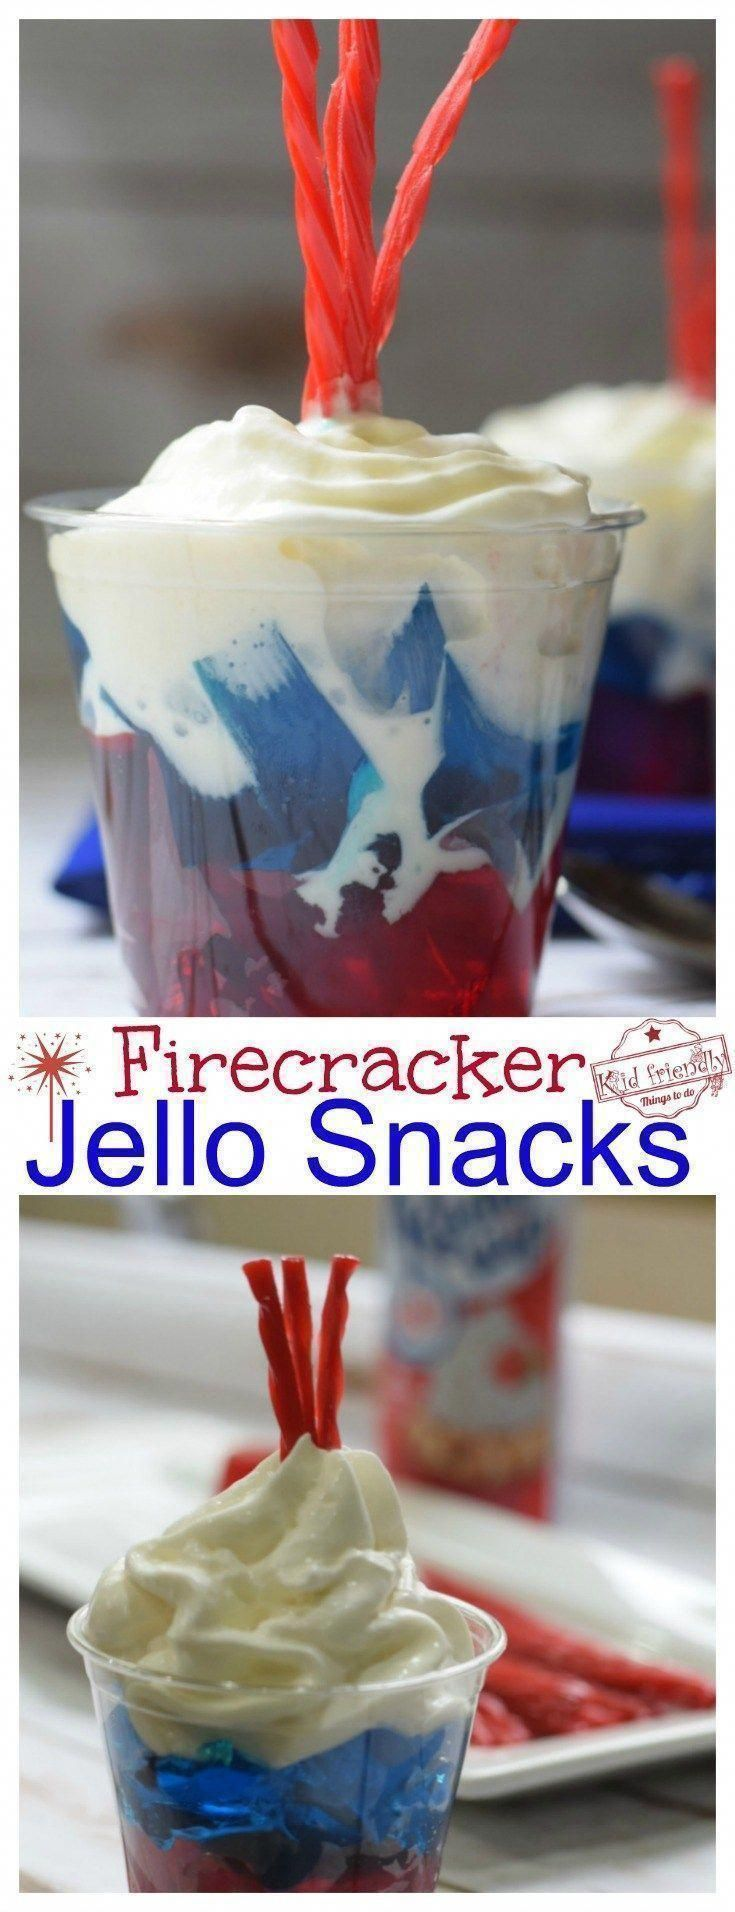 Firecracker Jello Snack dessert. Easy and patriotic fun food treats! www.kidfriendlythingstodo.com Memorial Day, Labor Day, Fourth of July #labordaydesserts